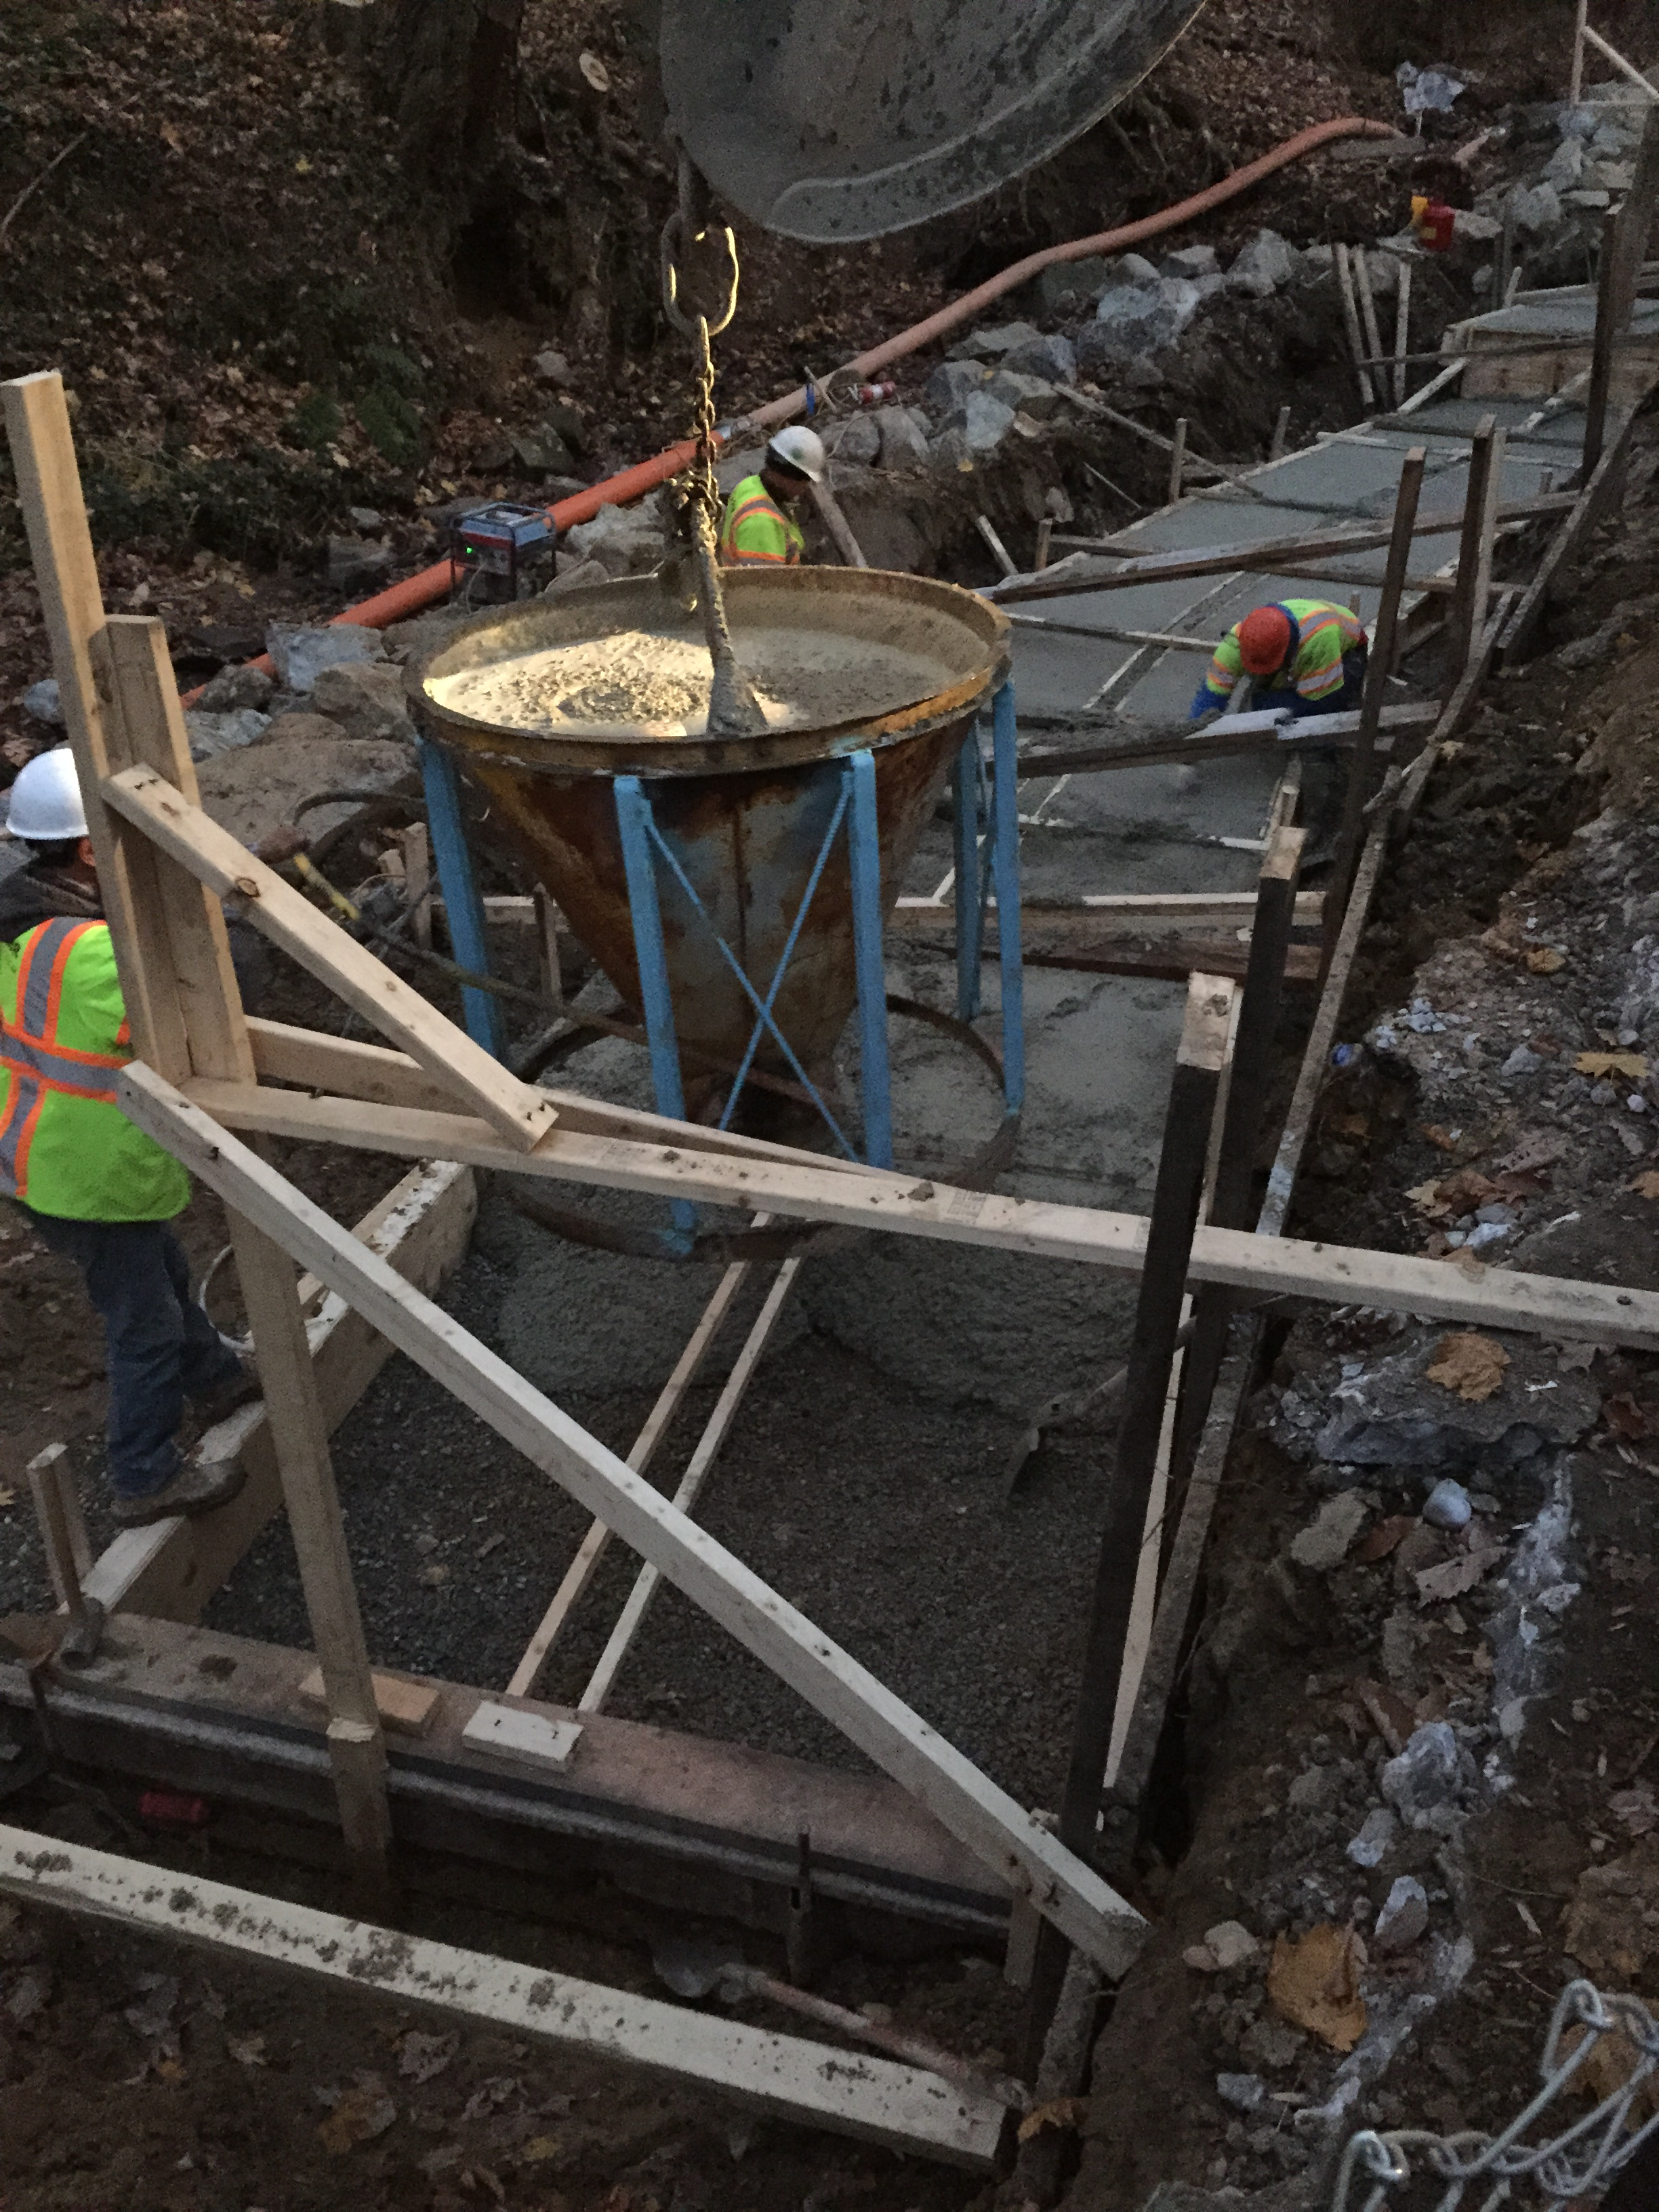 Placing concrete in the foundation formwork using a hopper bucket